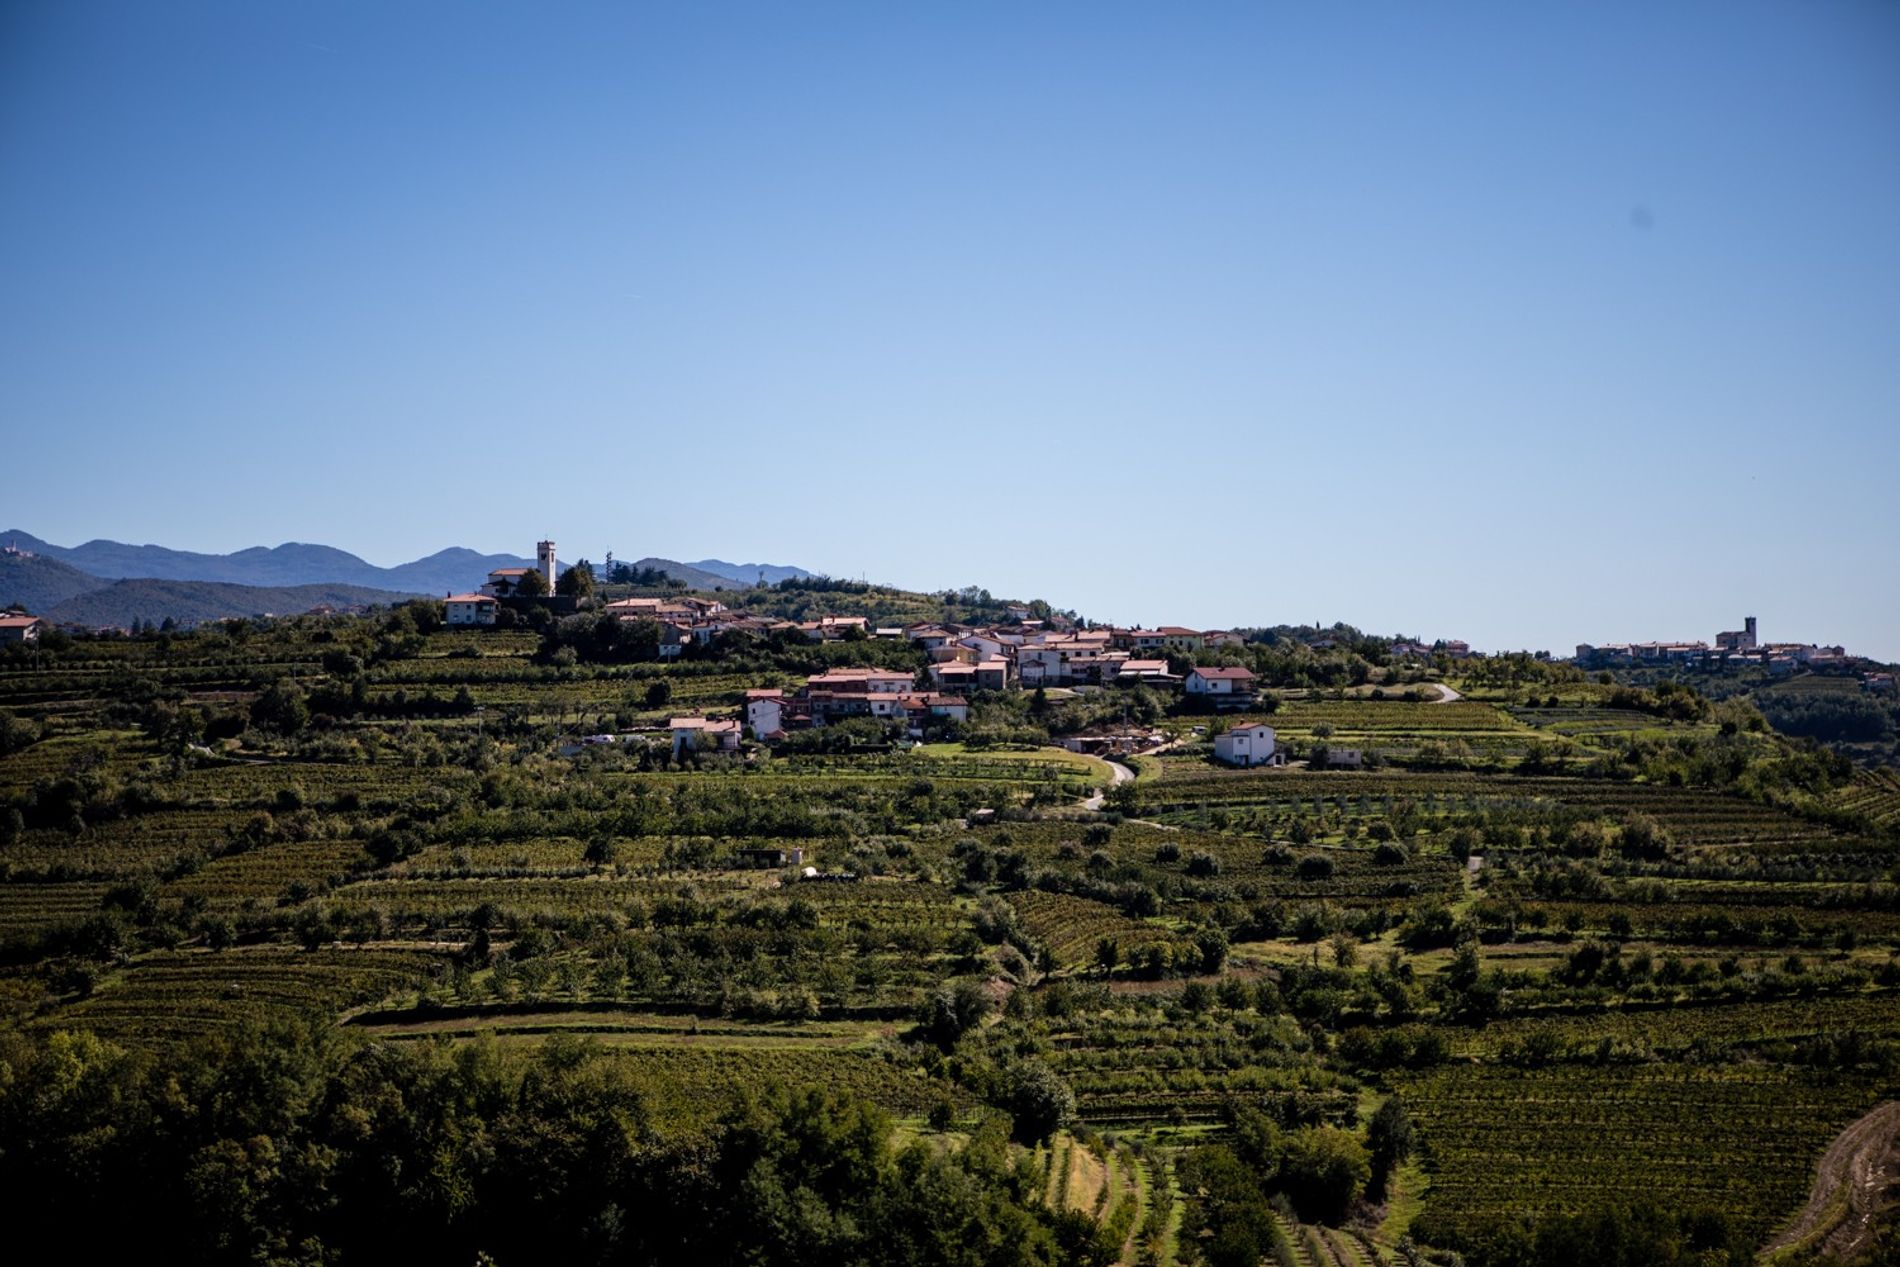 The rolling hills surrounding the village of Višnjevik are reminiscent of the Italian wine-country.